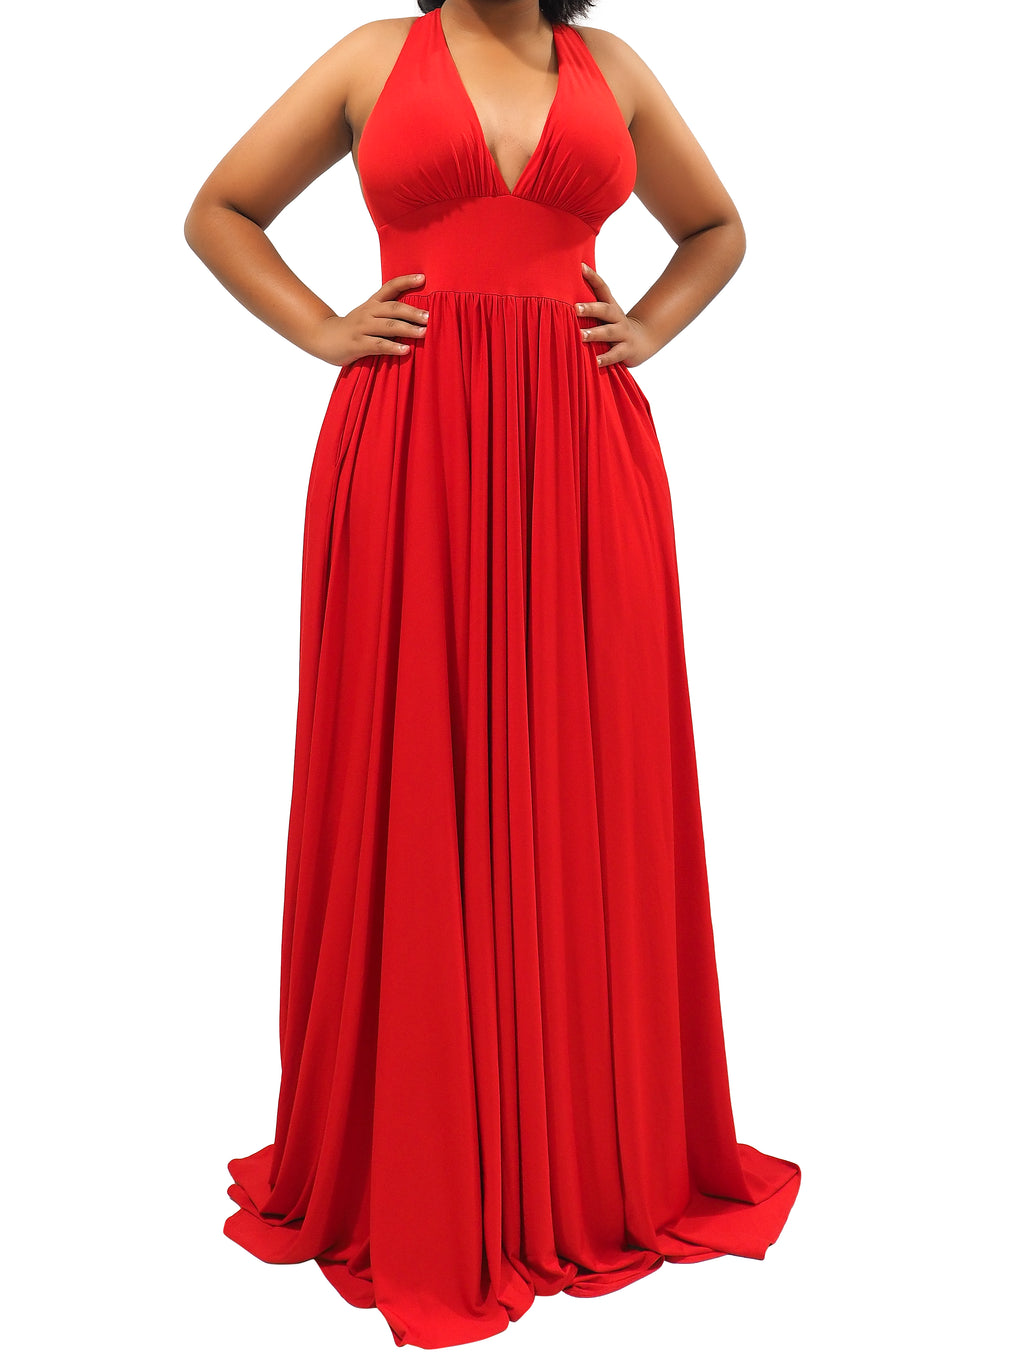 Indria red jersey dress